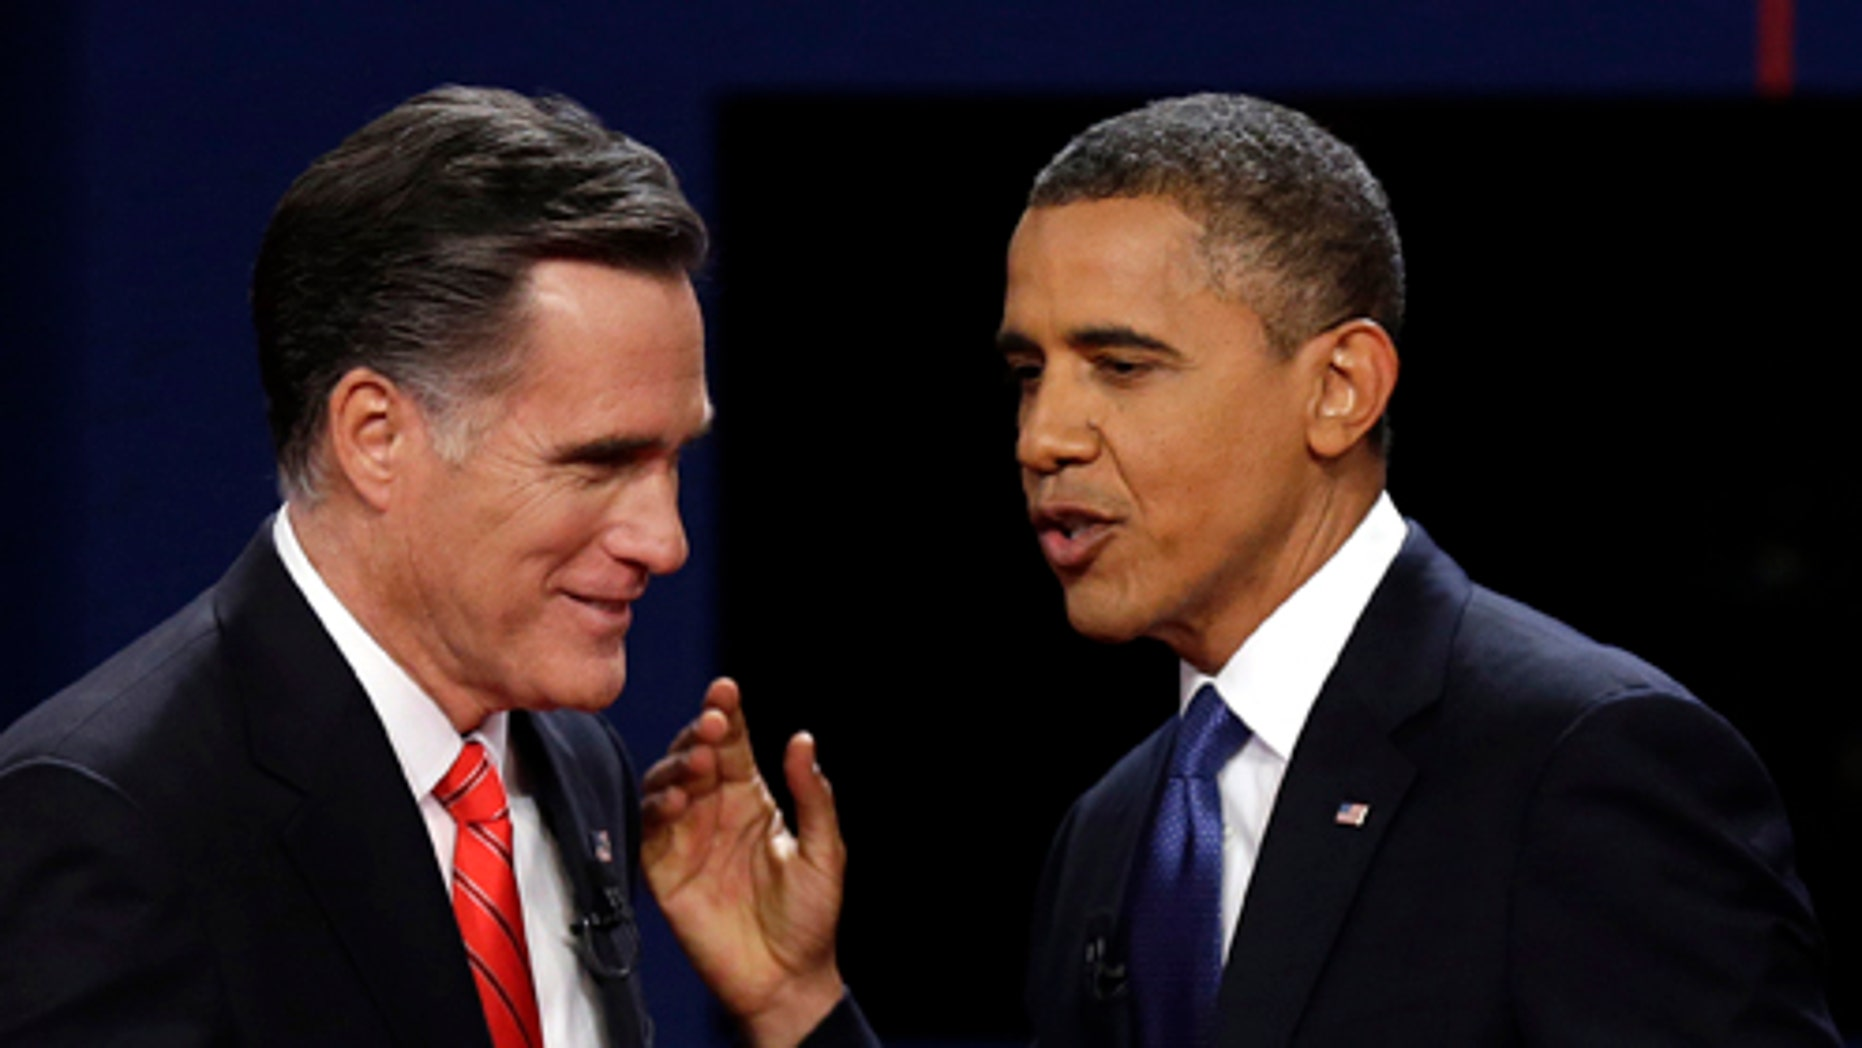 FILE - In this Oct. 3, 2012 file photo, Republican presidential candidate former Massachusetts Gov. Mitt Romney and President Barack Obama talk after the first presidential debate at the University of Denver in Denver. The razor-thin race for the White House has overshadowed the fight for control of Congress. But the stakes are high in the Senate contests. With Republicans expected to retain control of the House of Representatives, a Republican Senate would give the party full control of the U.S. government if Romney wins the presidency. If Obama is re-elected, he hopes to have a Democratic-controlled Senate to counteract the Republican House, advance his agenda and defend his signature legislative victory, his health care overhaul, which Republicans have vowed to repeal. (AP Photo/Charlie Neibergall, File)